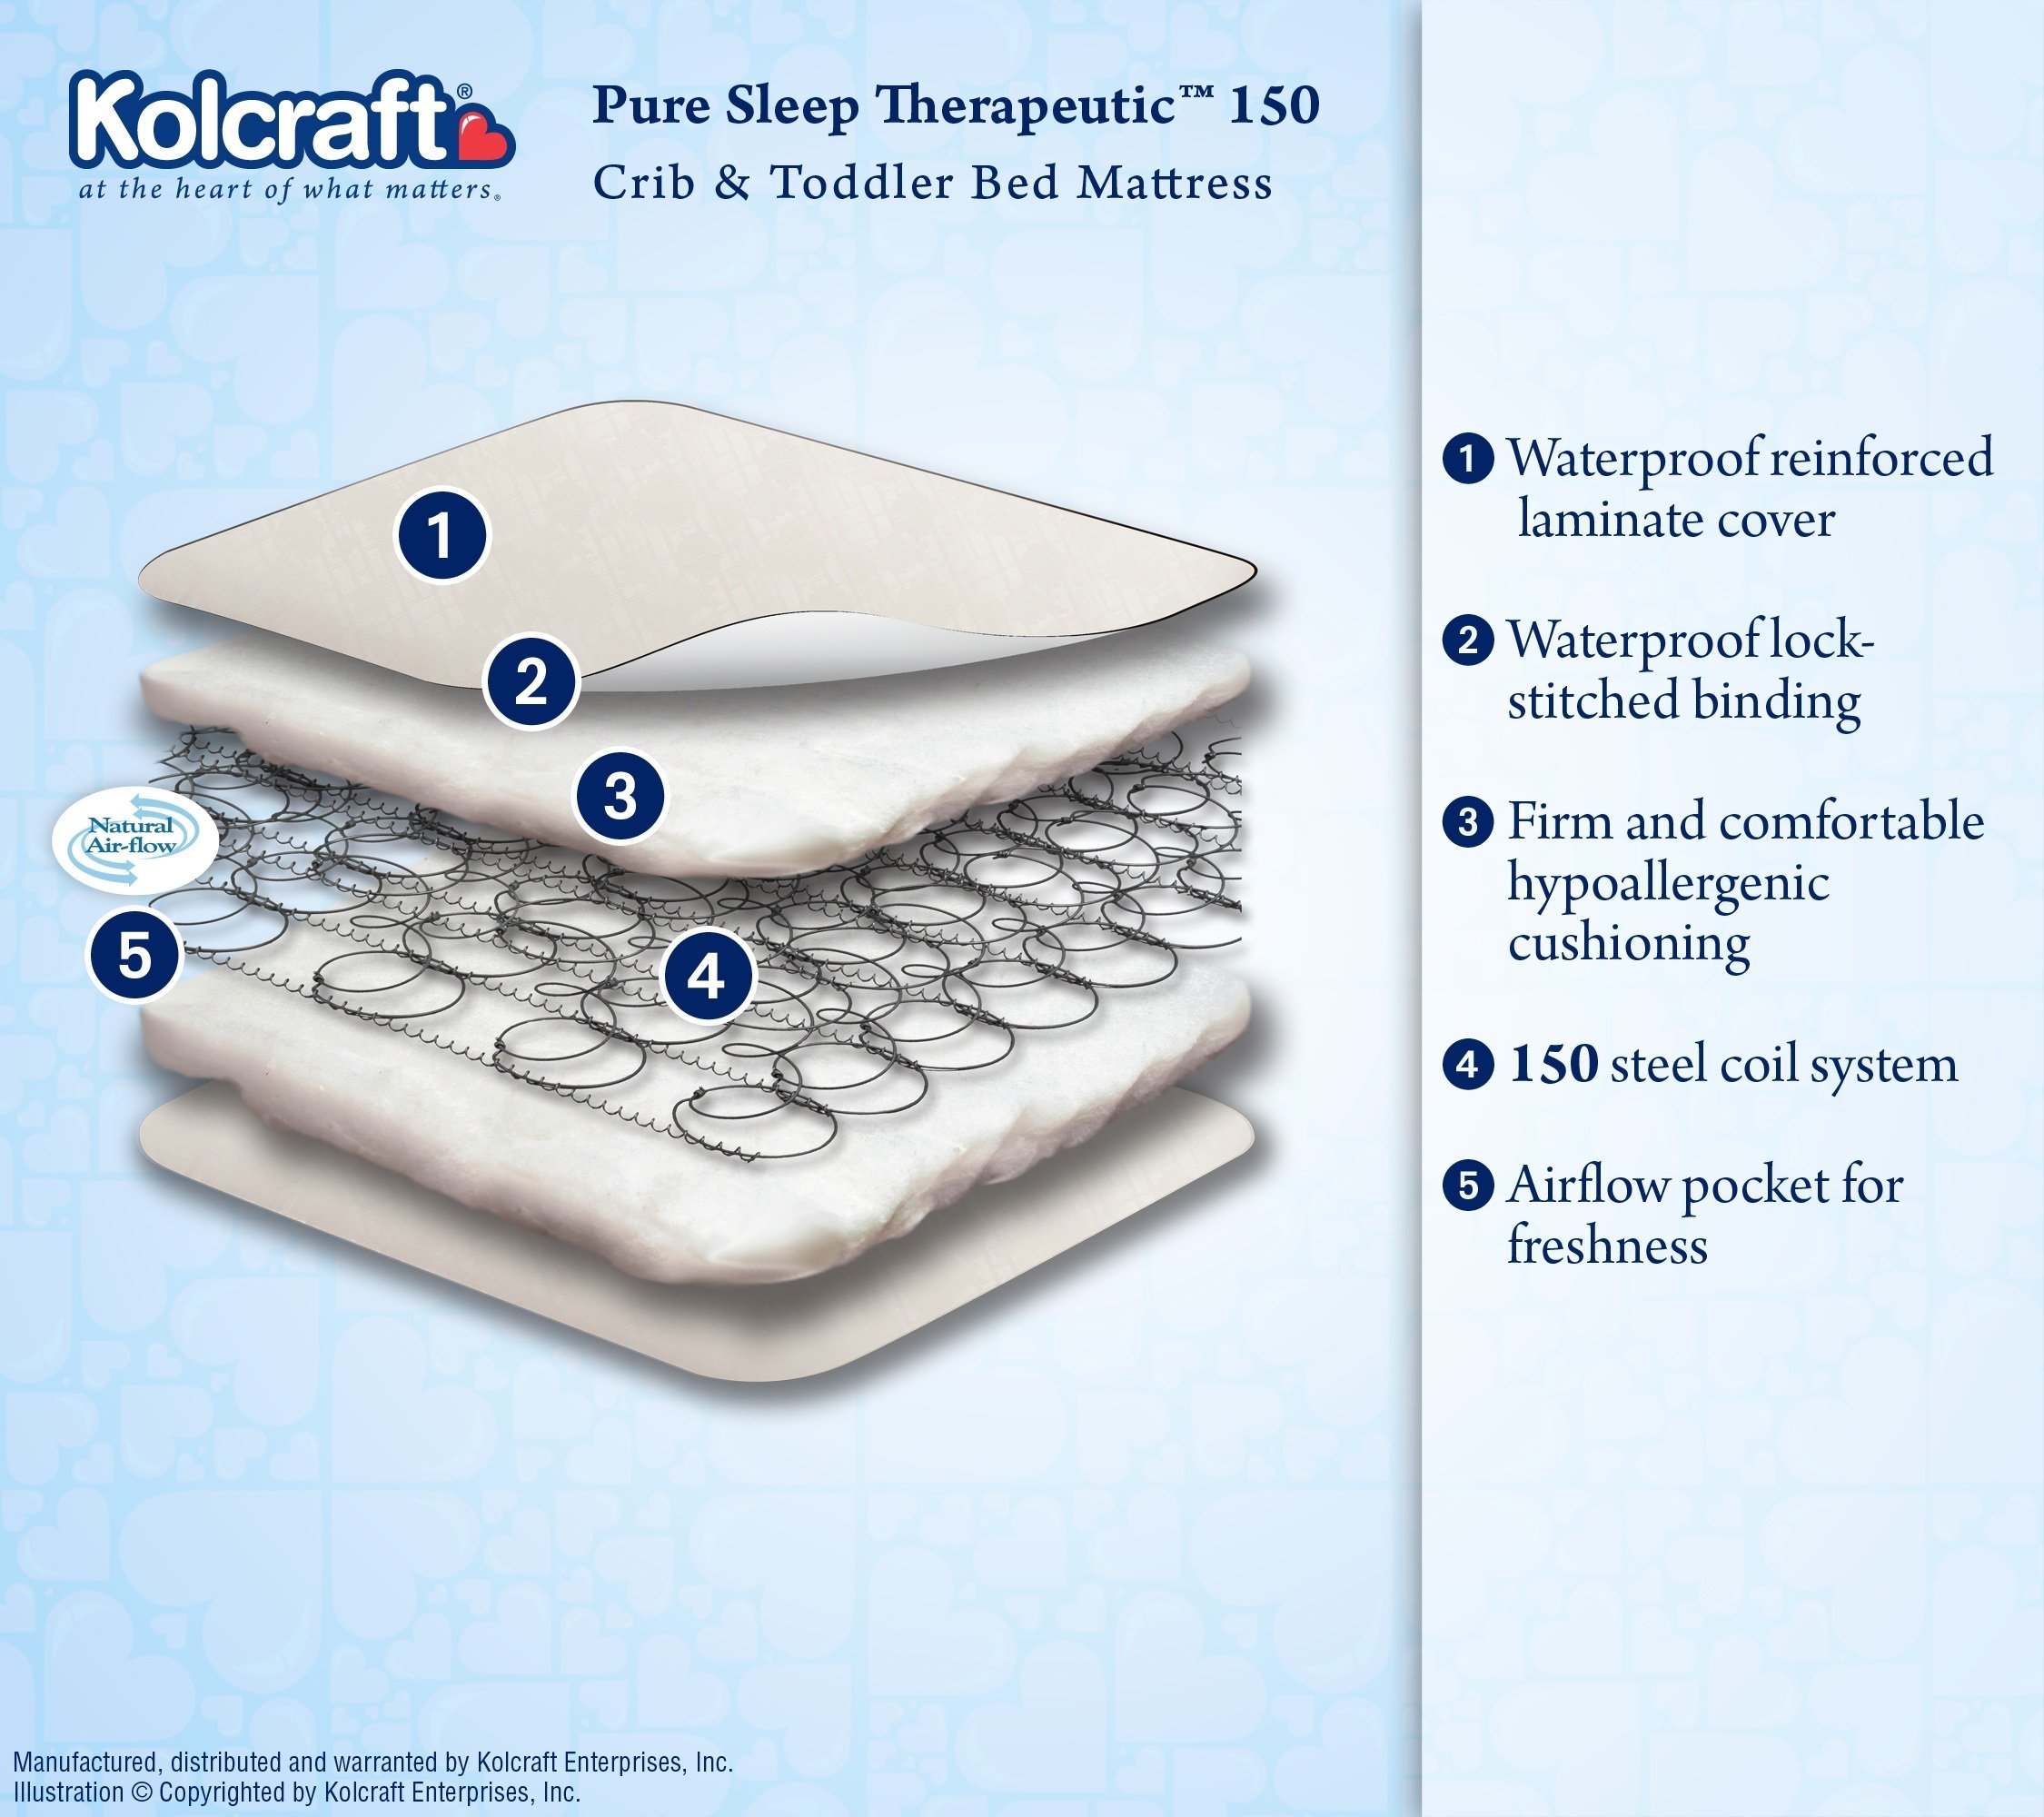 "Kolcraft Pure Sleep Therapeutic 150 Waterproof Toddler & Baby Crib Mattress – 150 Extra Firm Coils, 51.7"" x 27.3″"